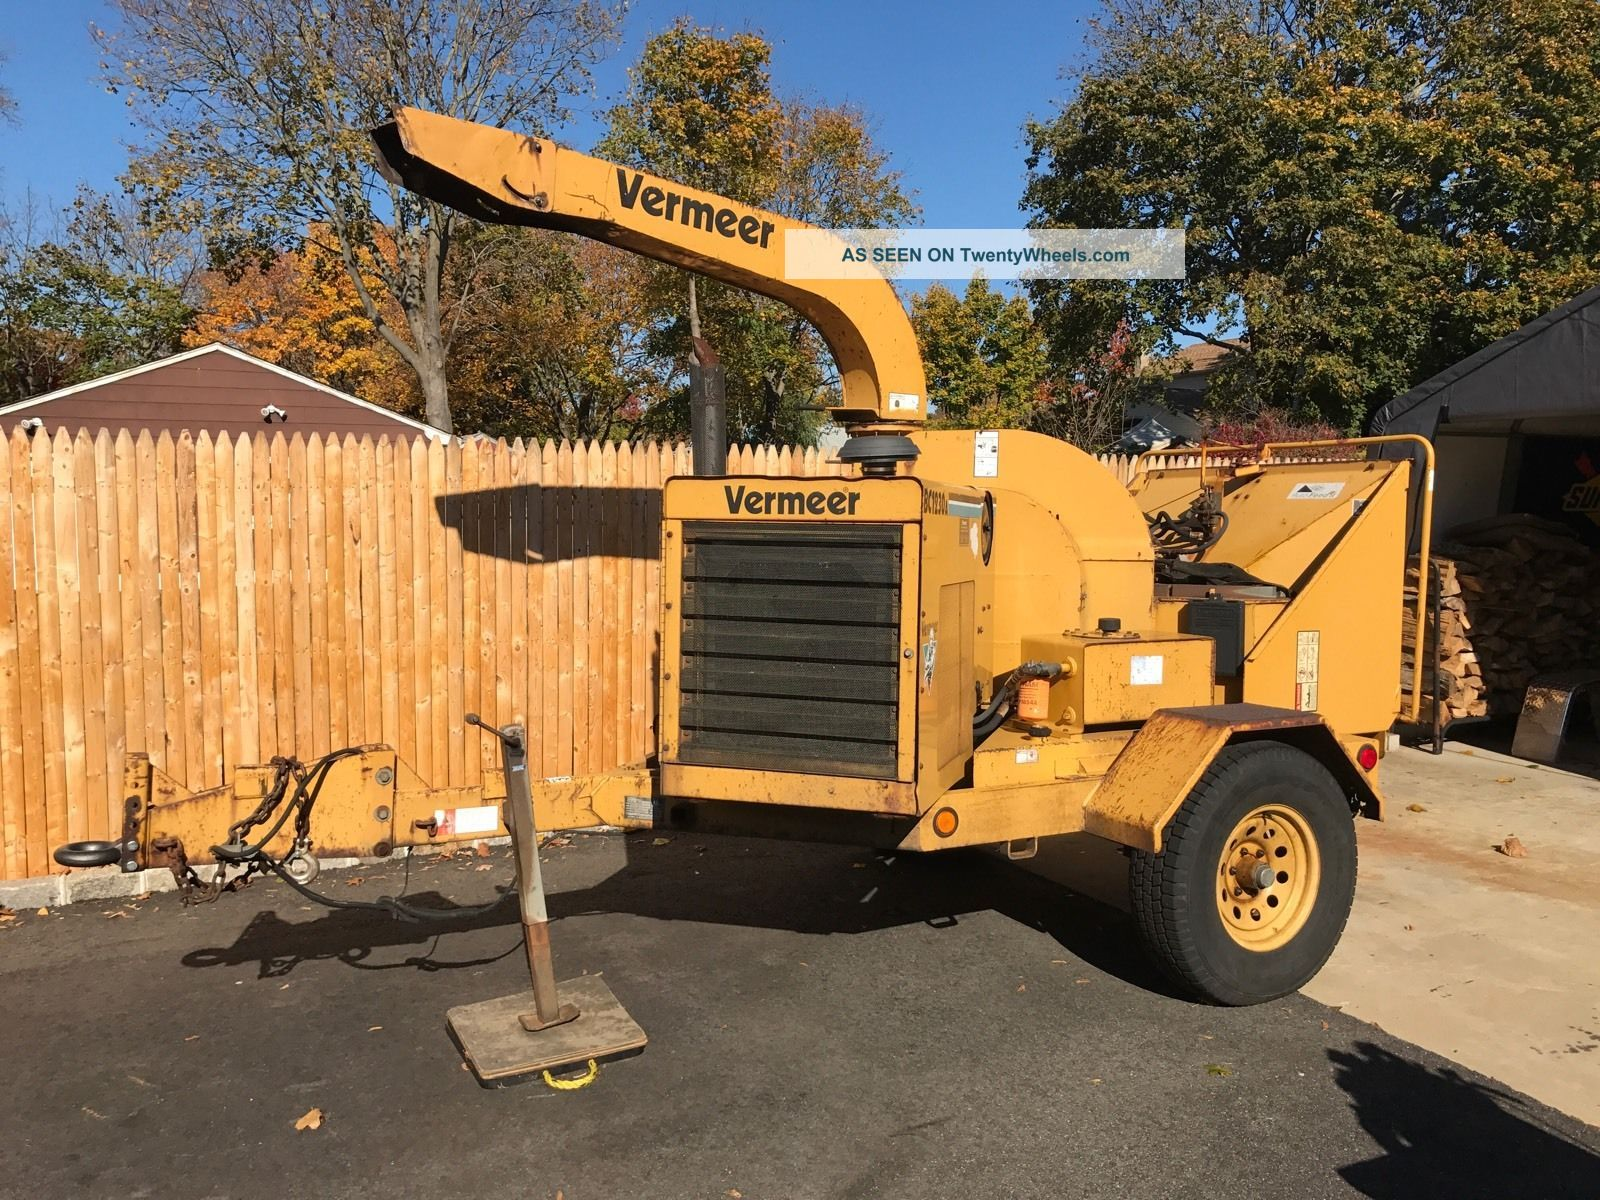 2001 Vermeer Bc1230a Chipper Diesel, Wood Chippers & Stump Grinders photo